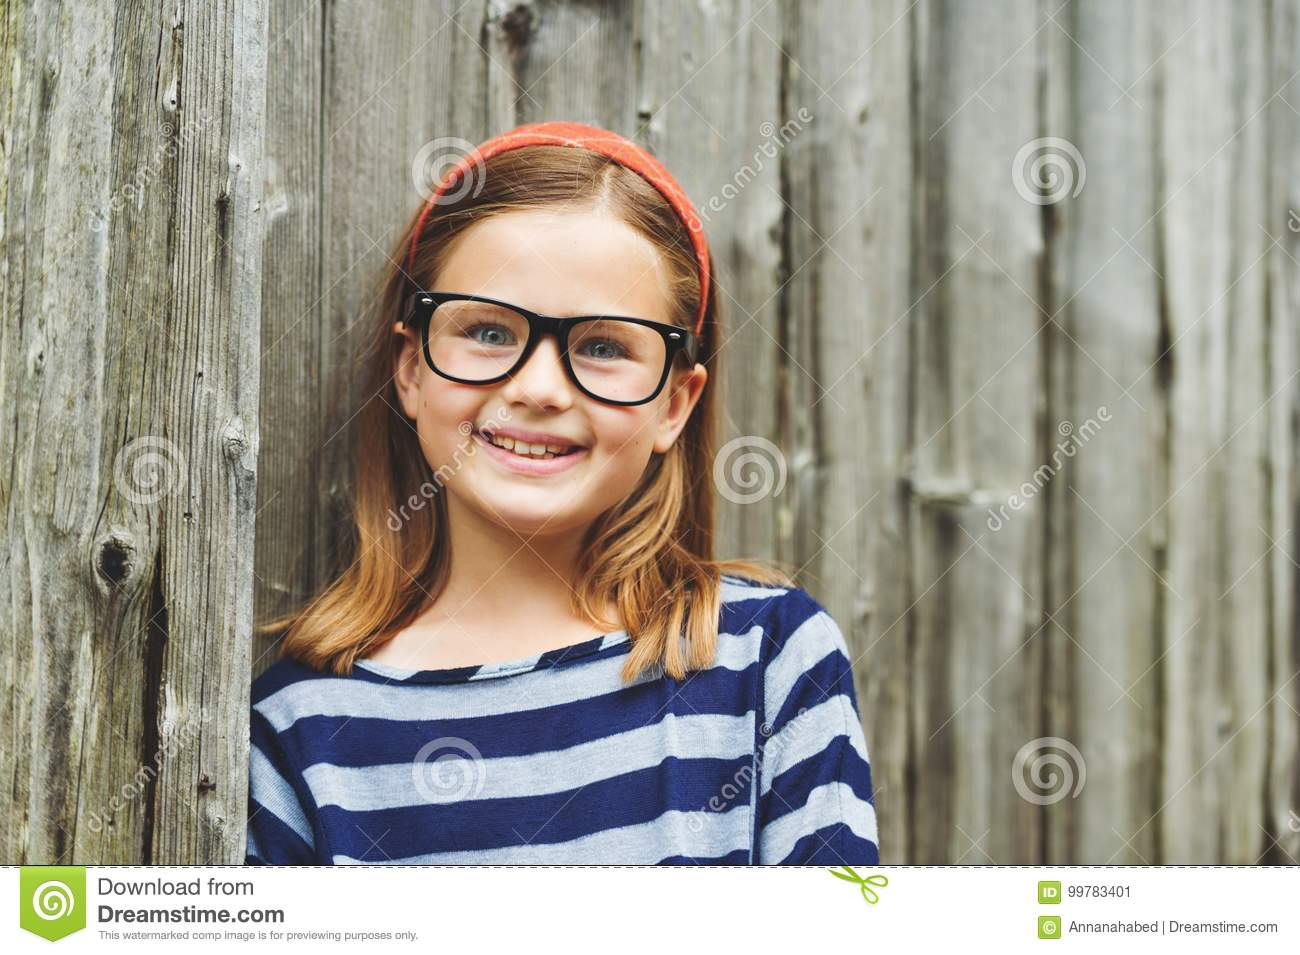 46164f4ce3 Outdoor portrait of a cute little 9 year old girl wearing eyeglasses